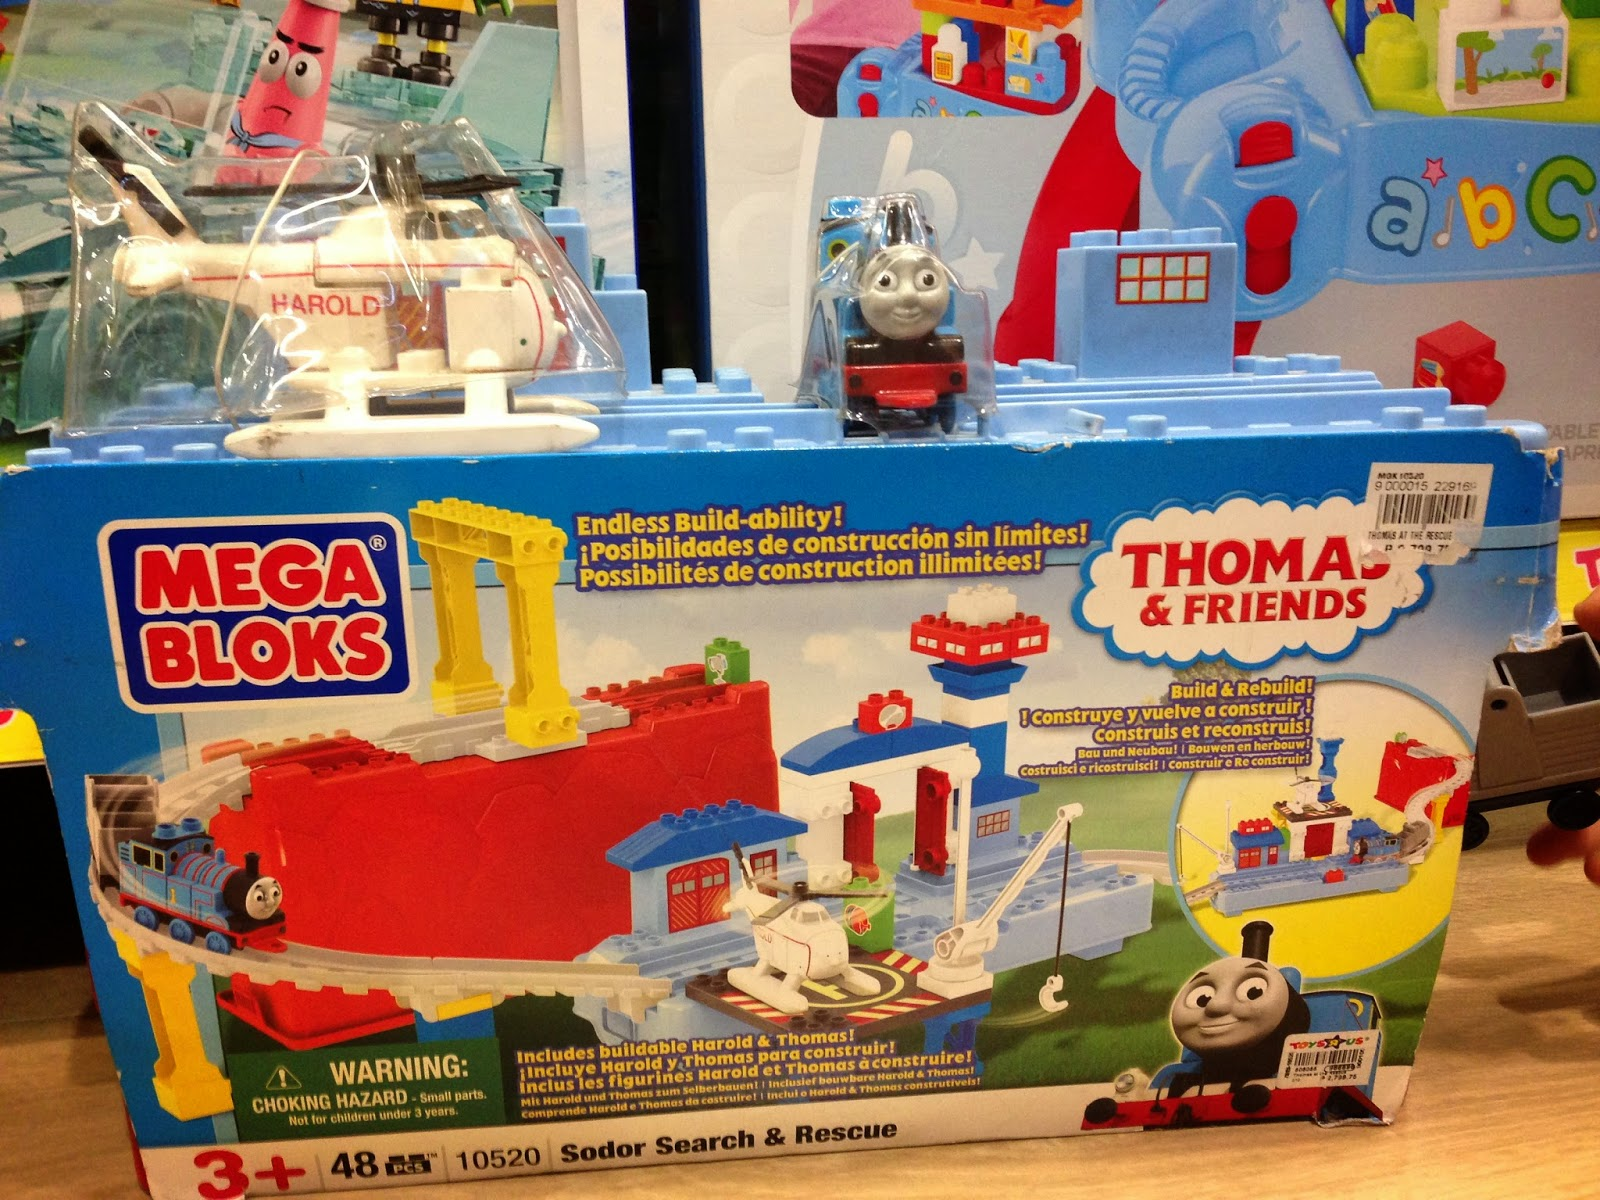 Thomas & Friends Mega Bloks on Sale in Manila, Philippines.  Toys R' Us and Toy Kingdom (Sodor Search & Rescue)